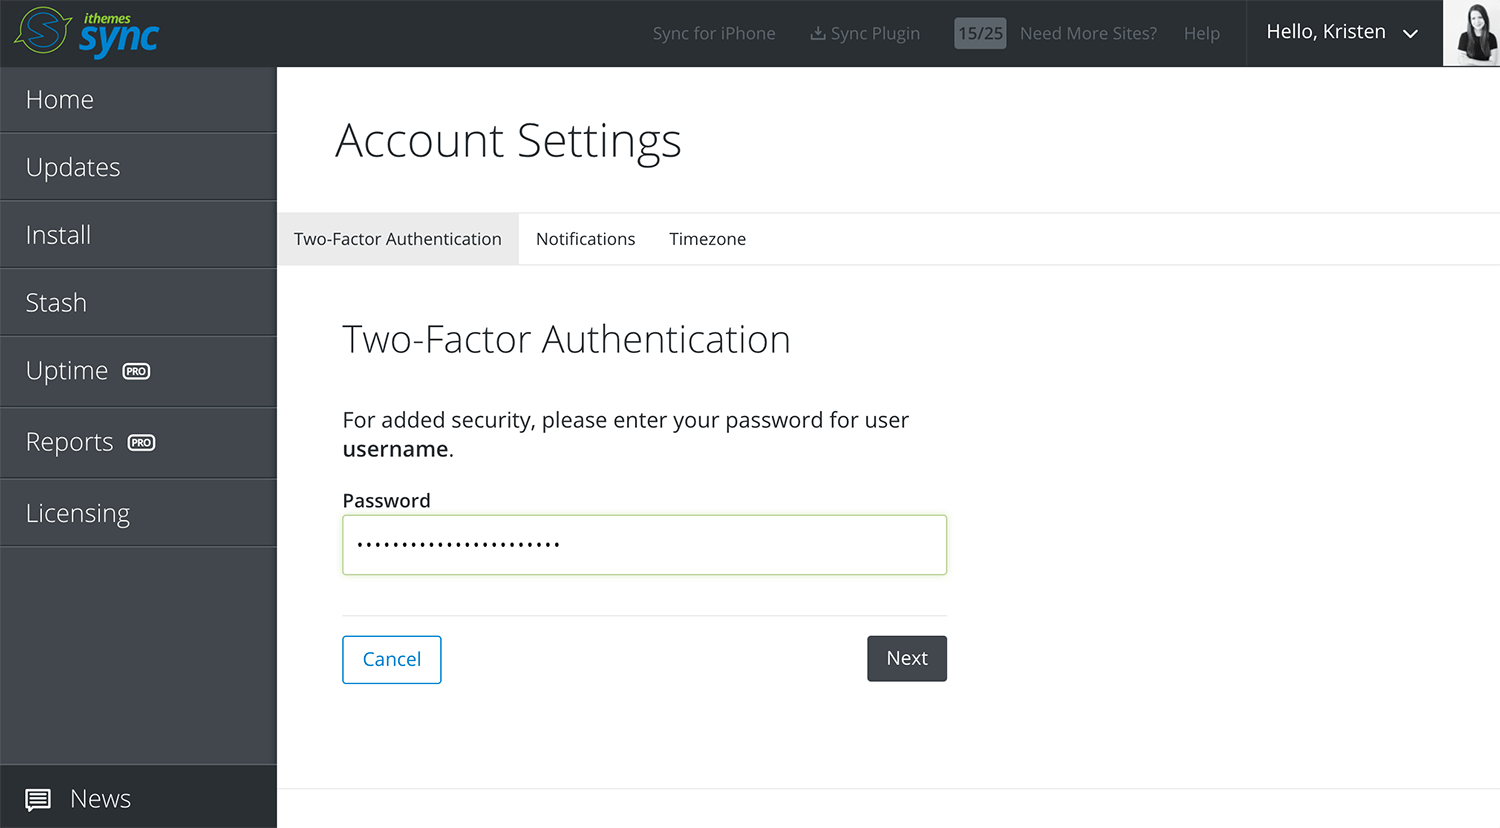 sync account settings